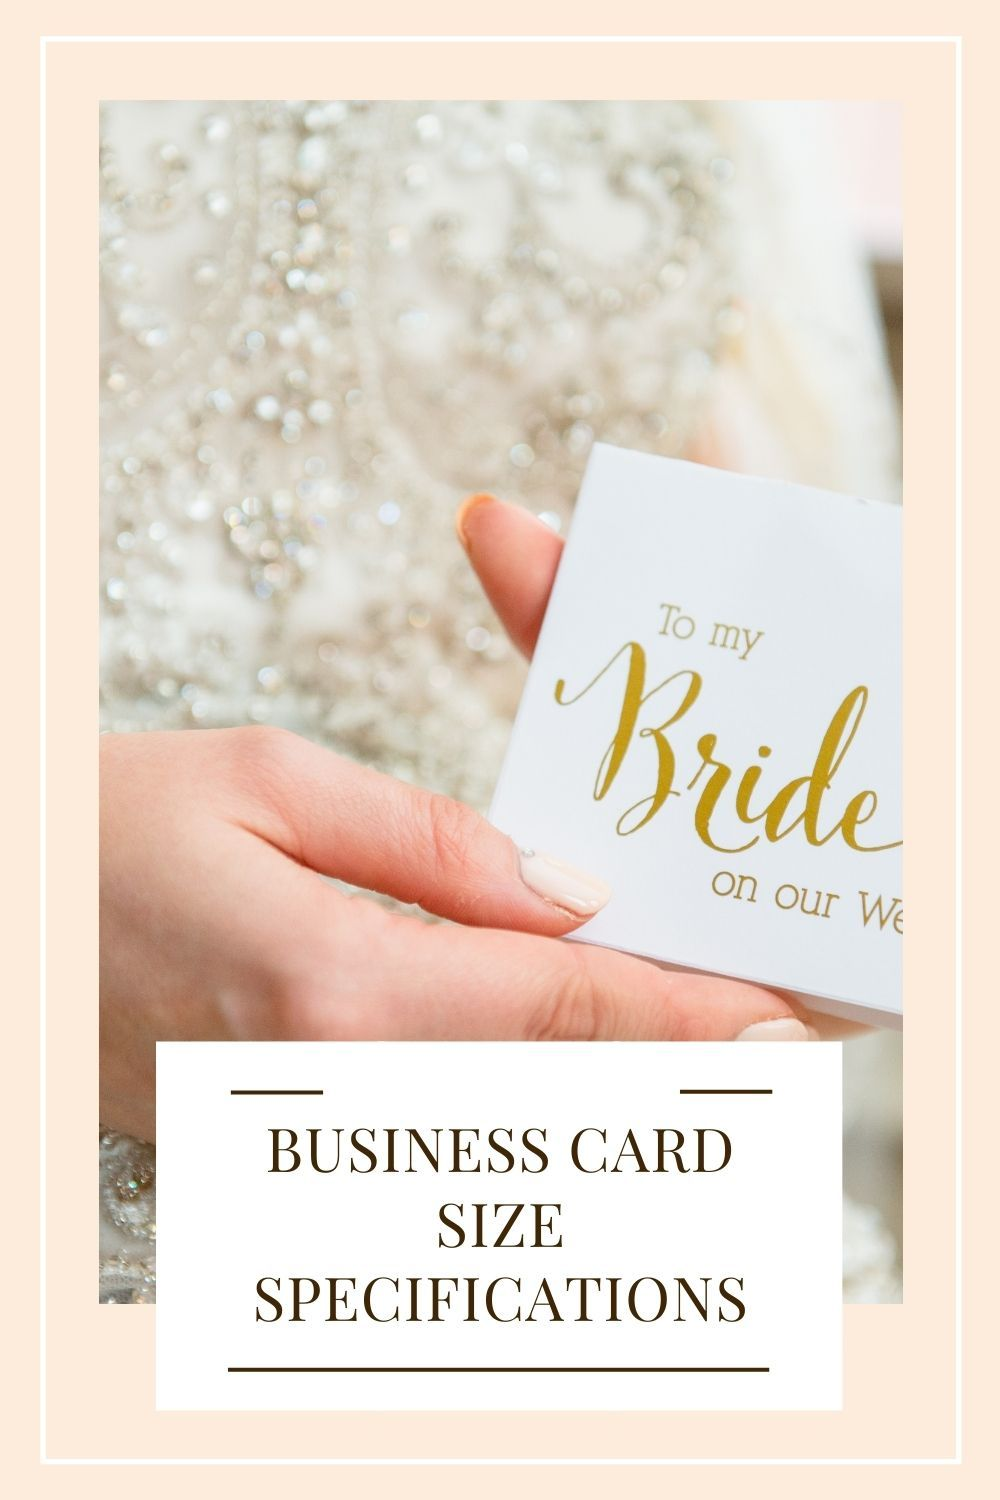 Business Card Size Specifications Business Card Size Card Sizes Cards